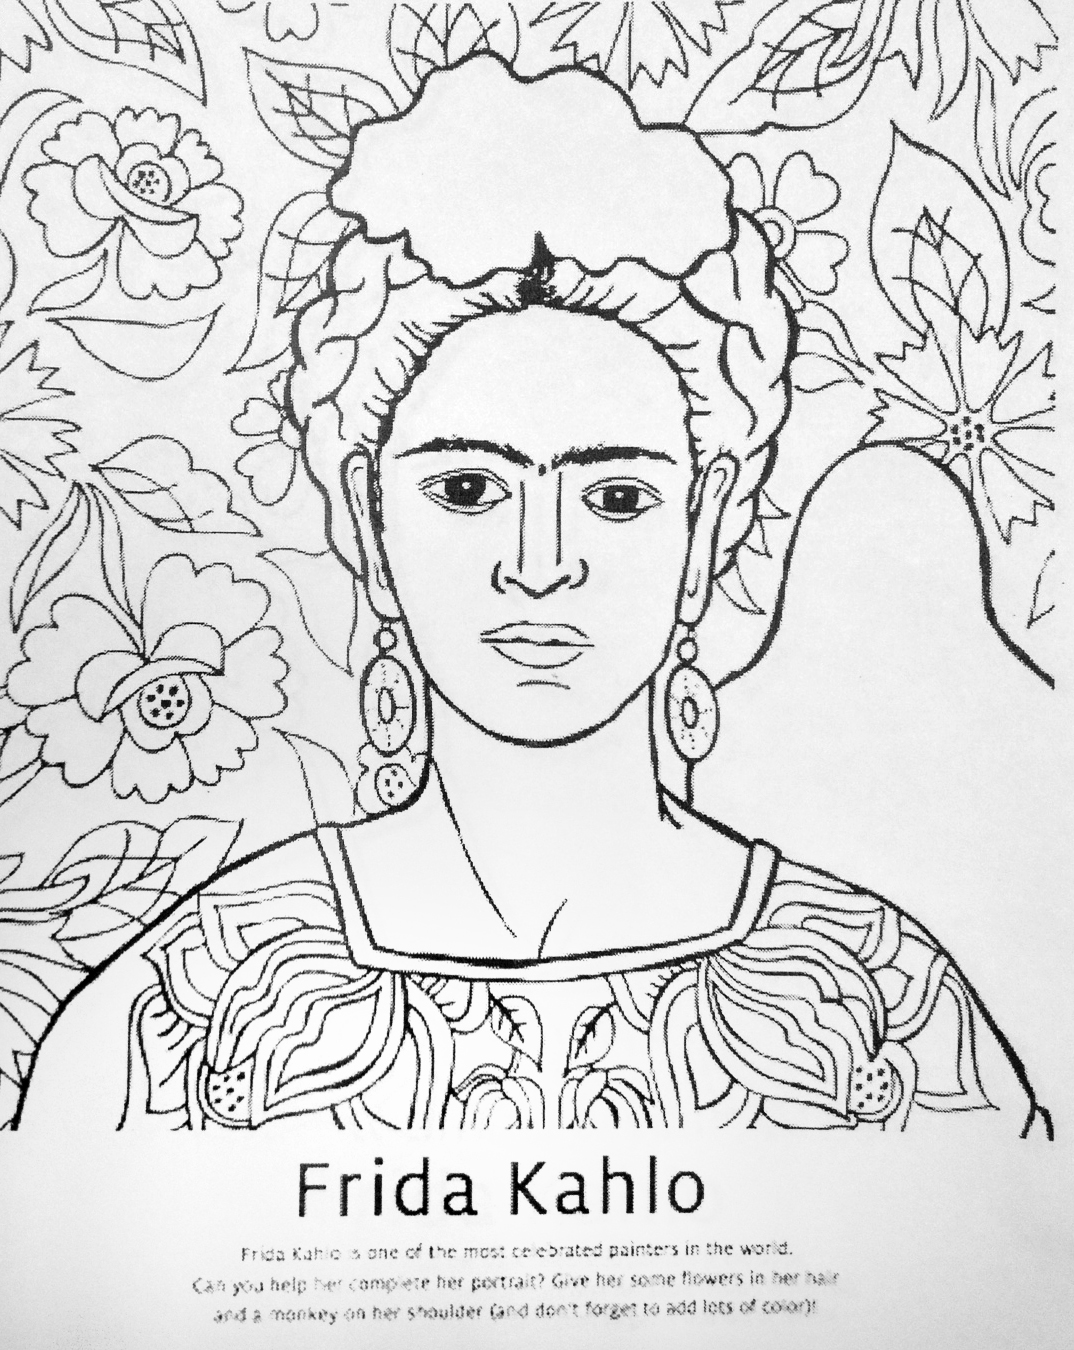 Frida With Coloring Pages Freecoloring4u Com Frida Kahlo Coloring Pages